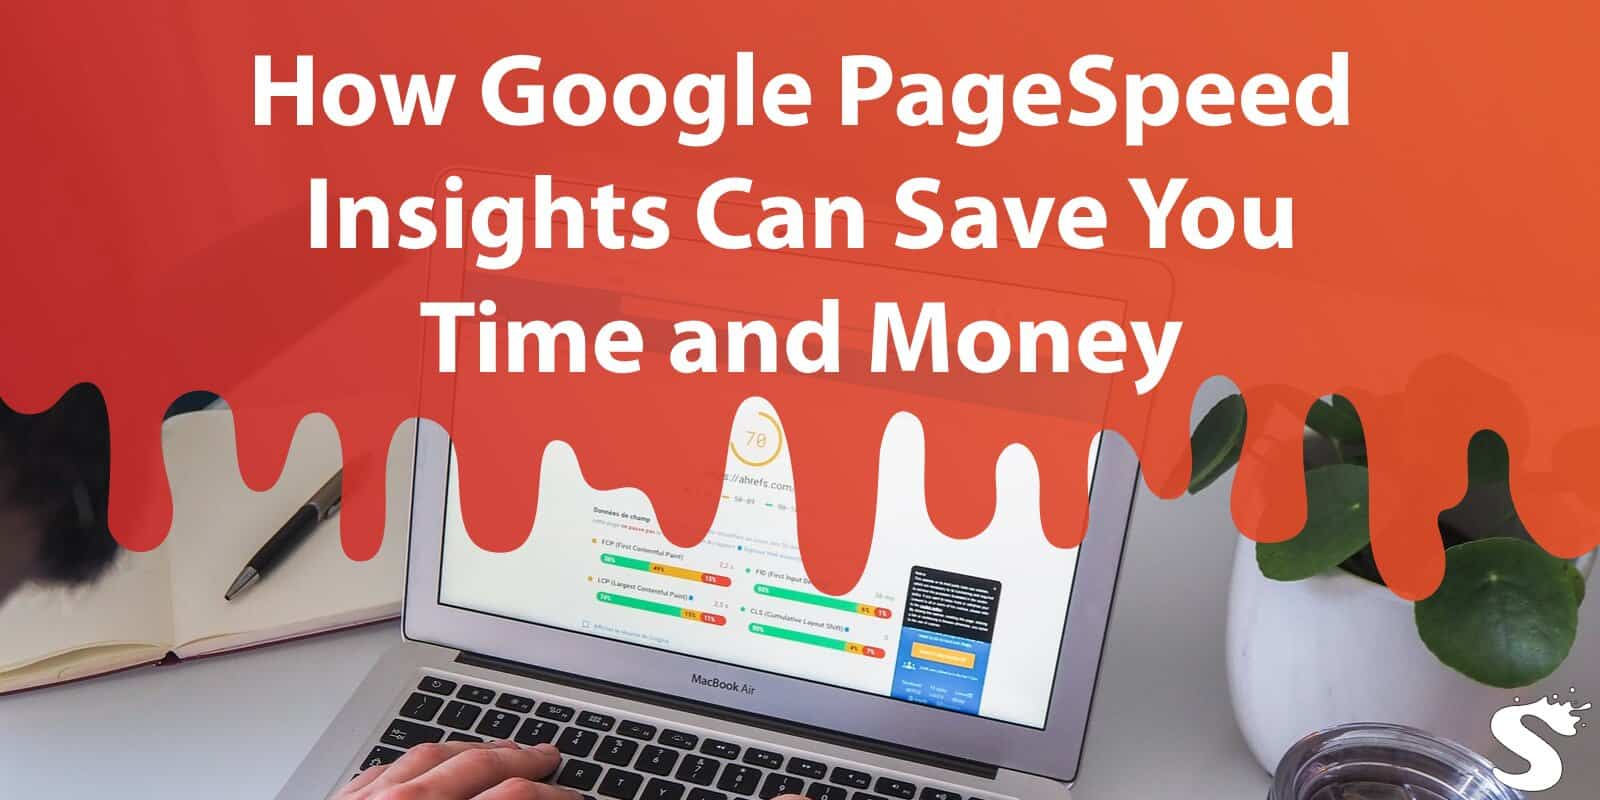 How Google Pagespeed Insights Can Save You Time and Money